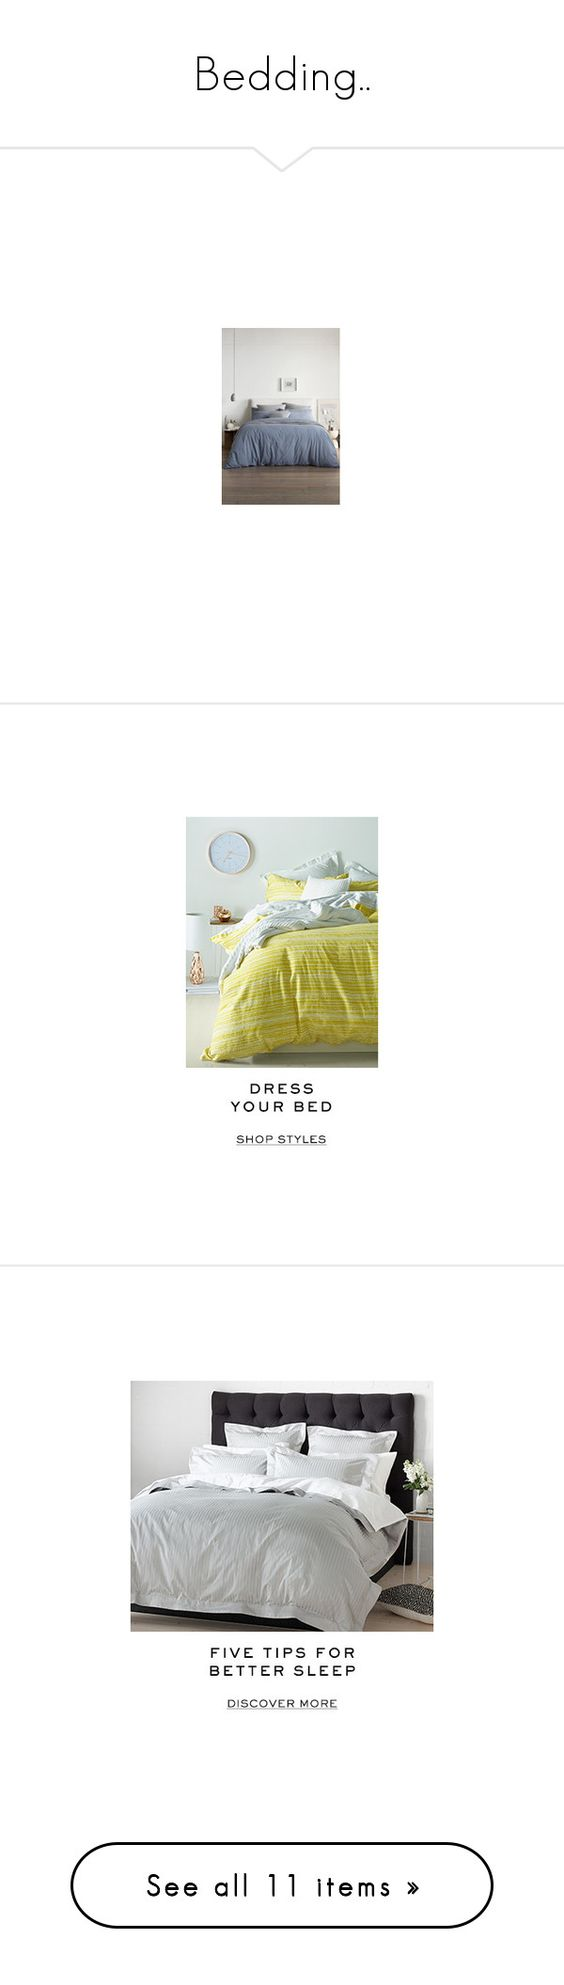 """Bedding.."" by vkevans ❤ liked on Polyvore featuring accessories, eyewear, sunglasses, home, bed & bath, bedding and quilts"